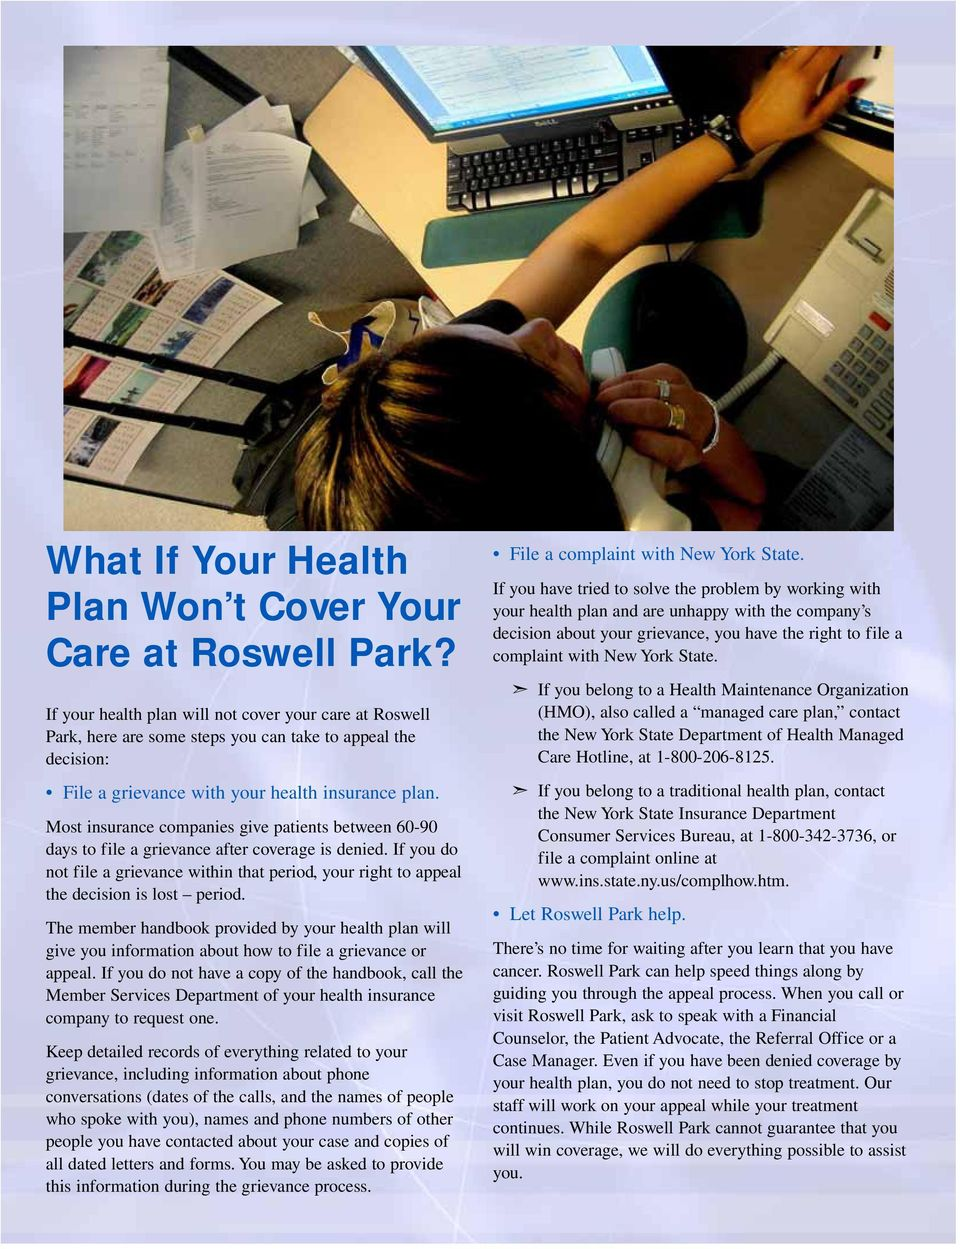 Most insurance companies give patients between 60-90 days to file a grievance after coverage is denied.